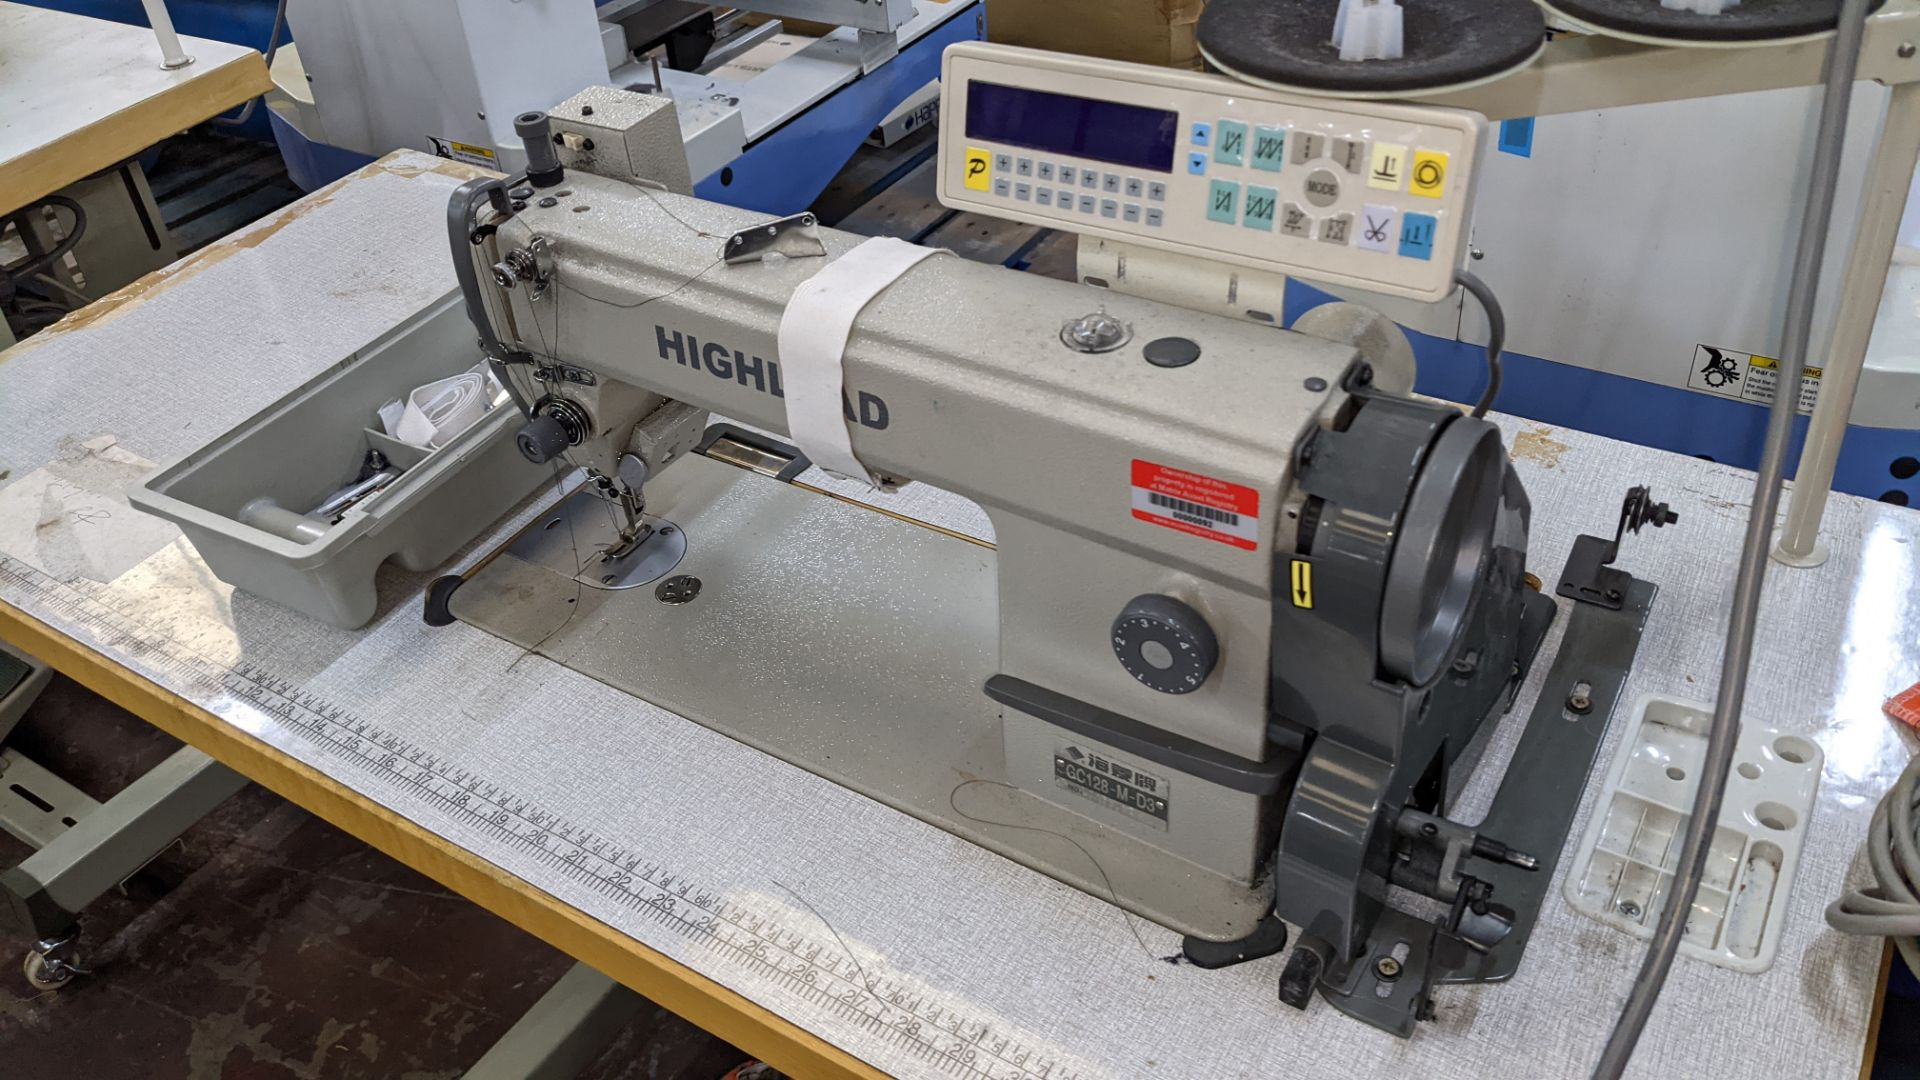 Highlead model GC128-M-D3 sewing machine - Image 5 of 18